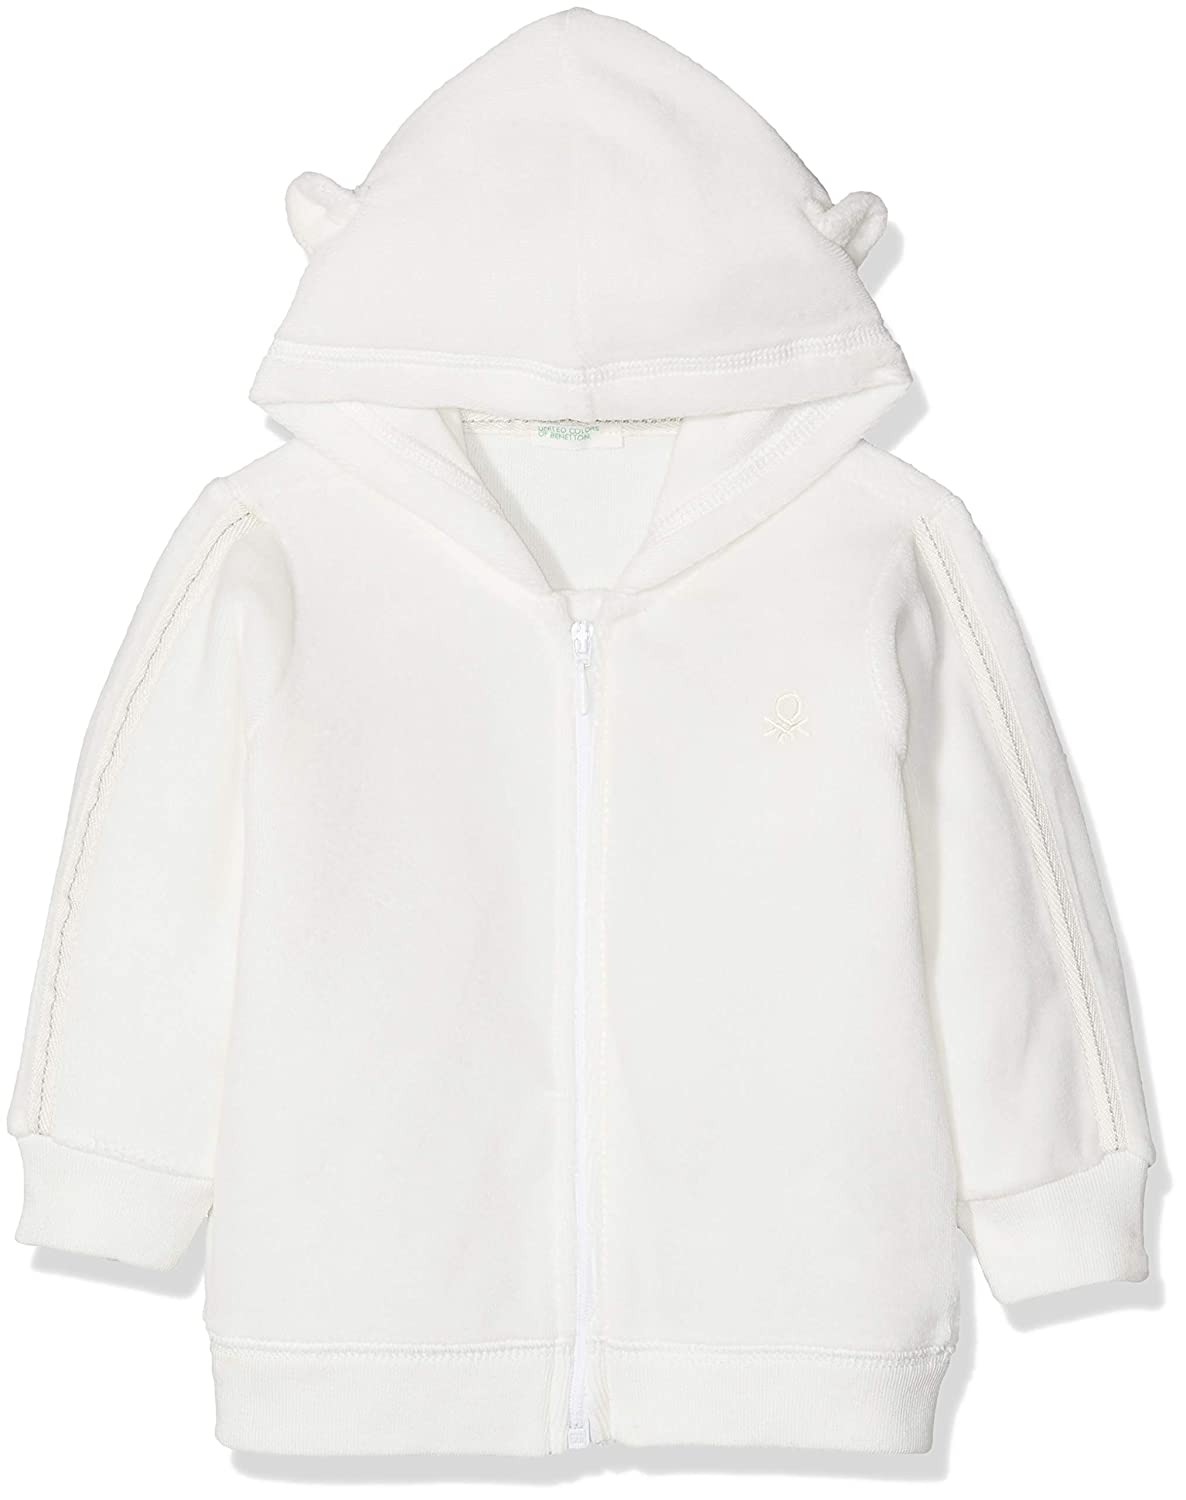 United Colors of Benetton Jacket W/Hood L/S, Giacca Bimbo